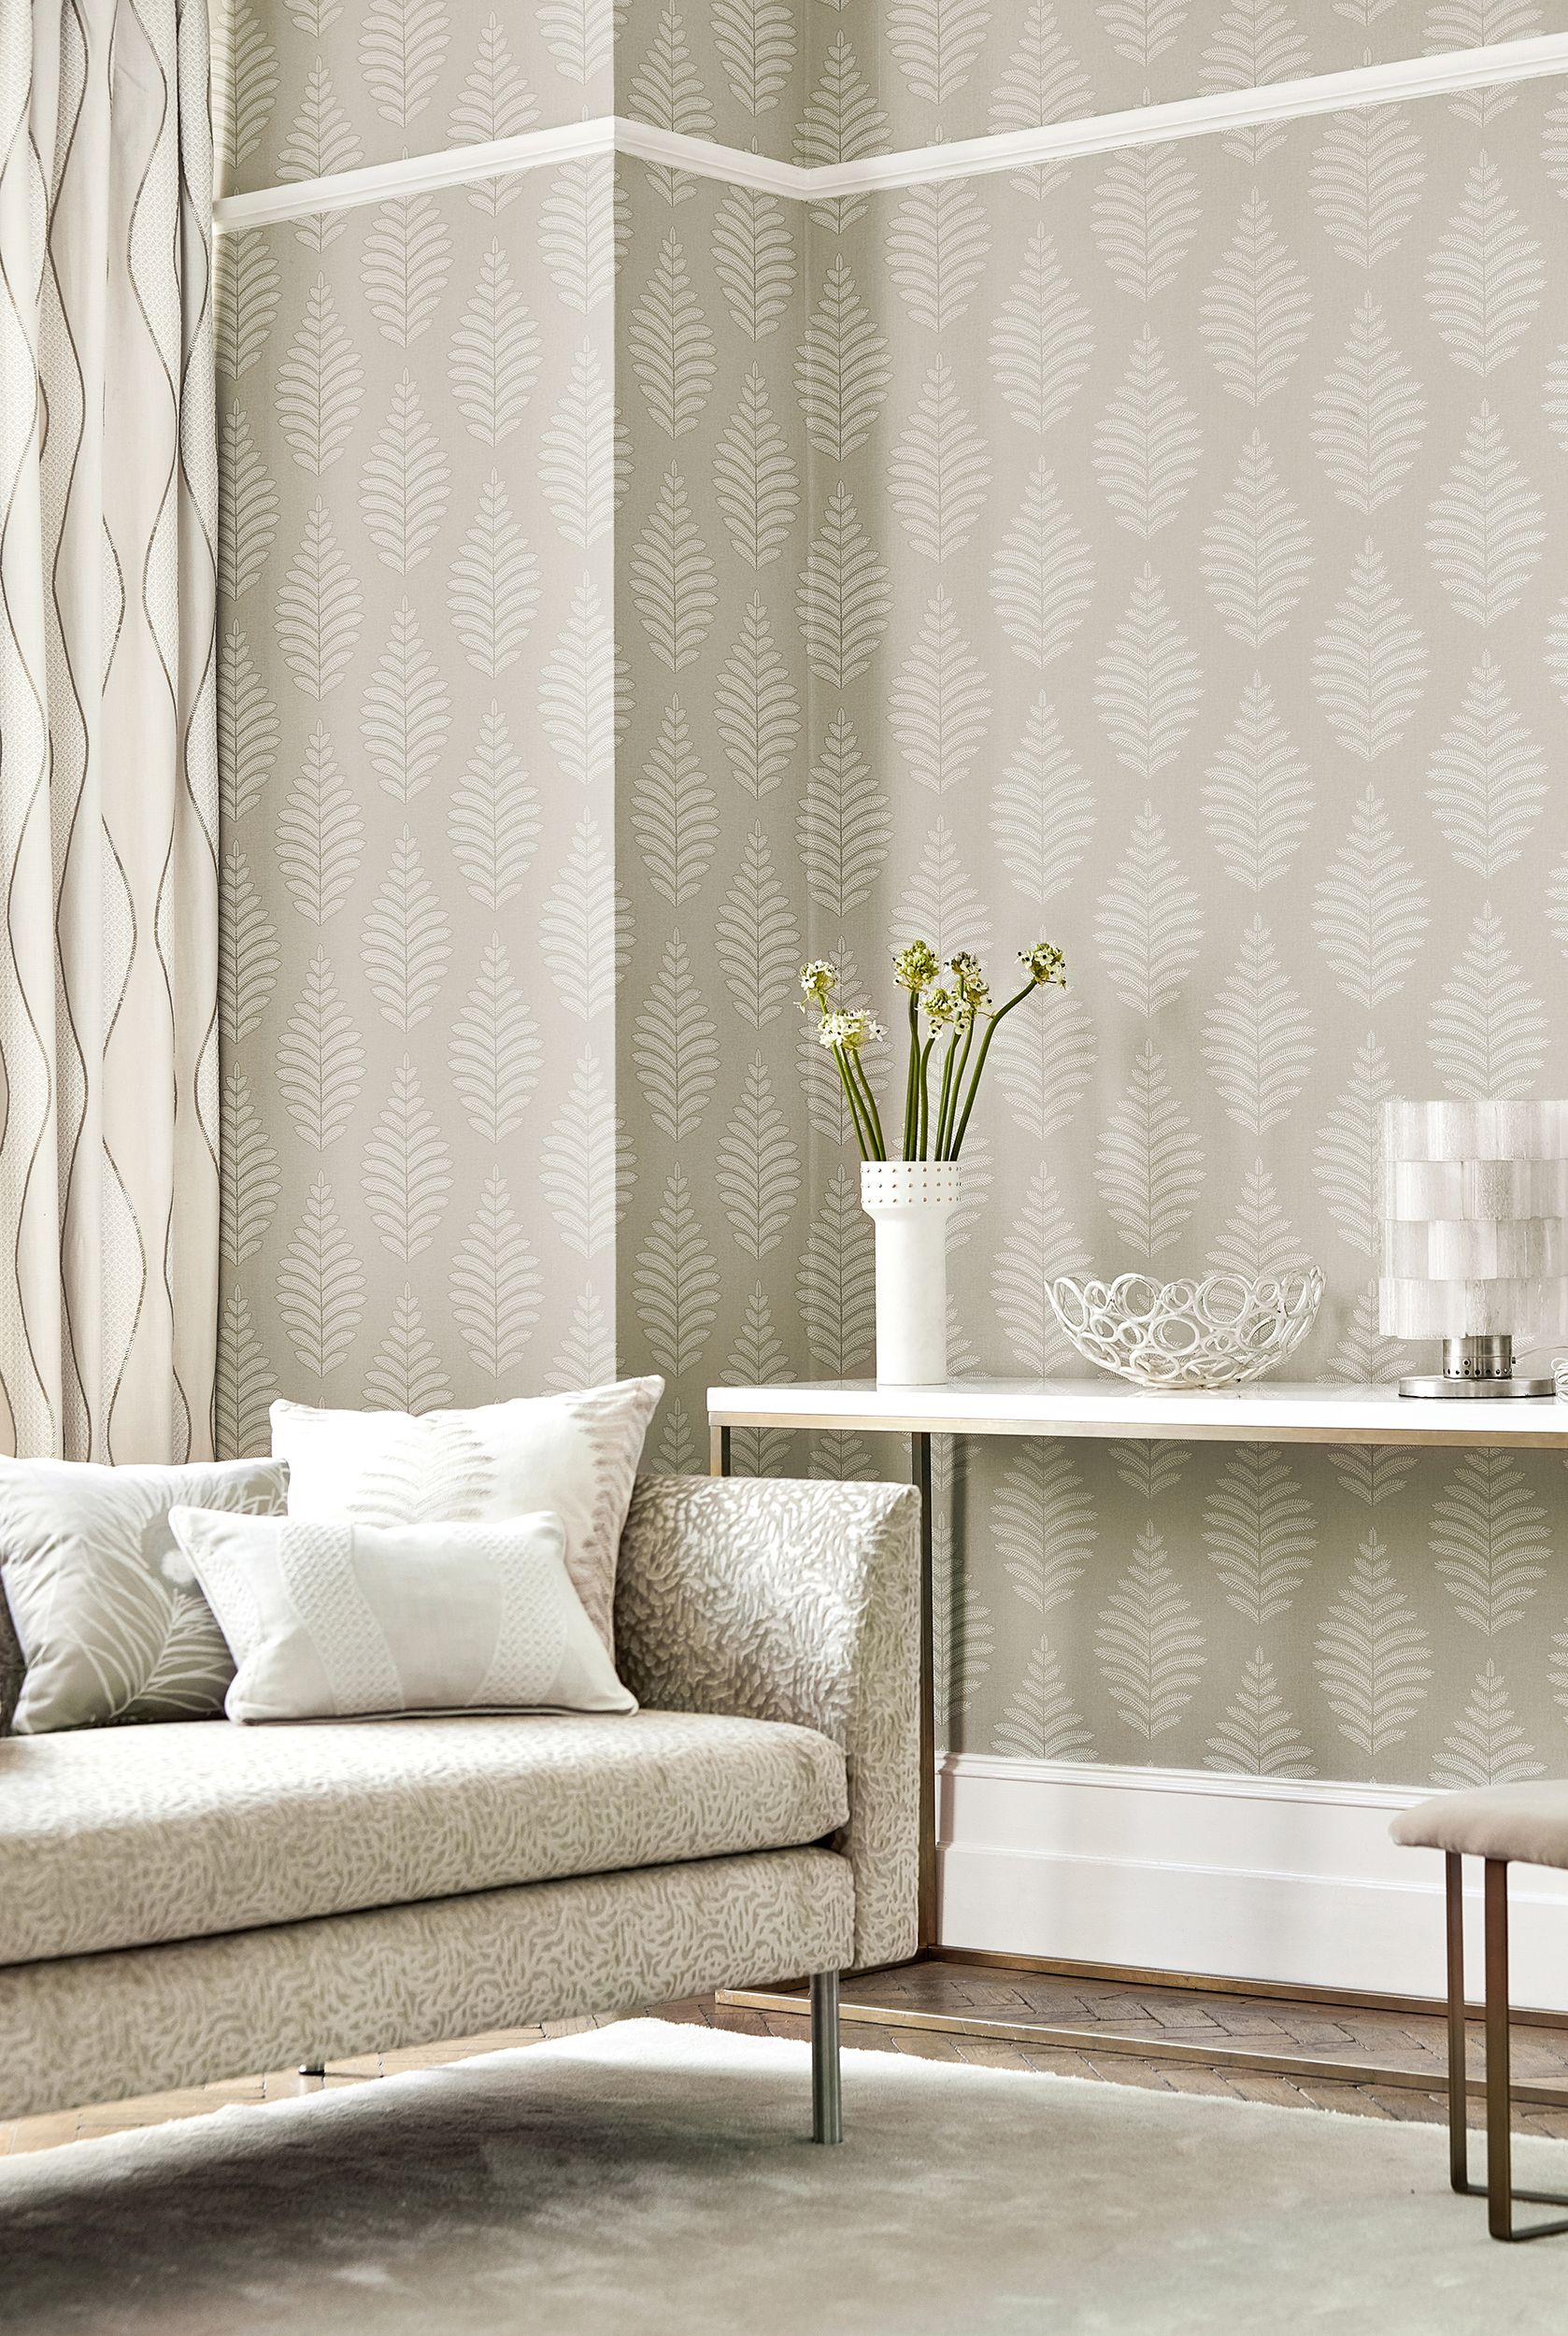 Hallway furniture gumtree  New Neutrals Harlequin launches  muted wallpapers for blissfully